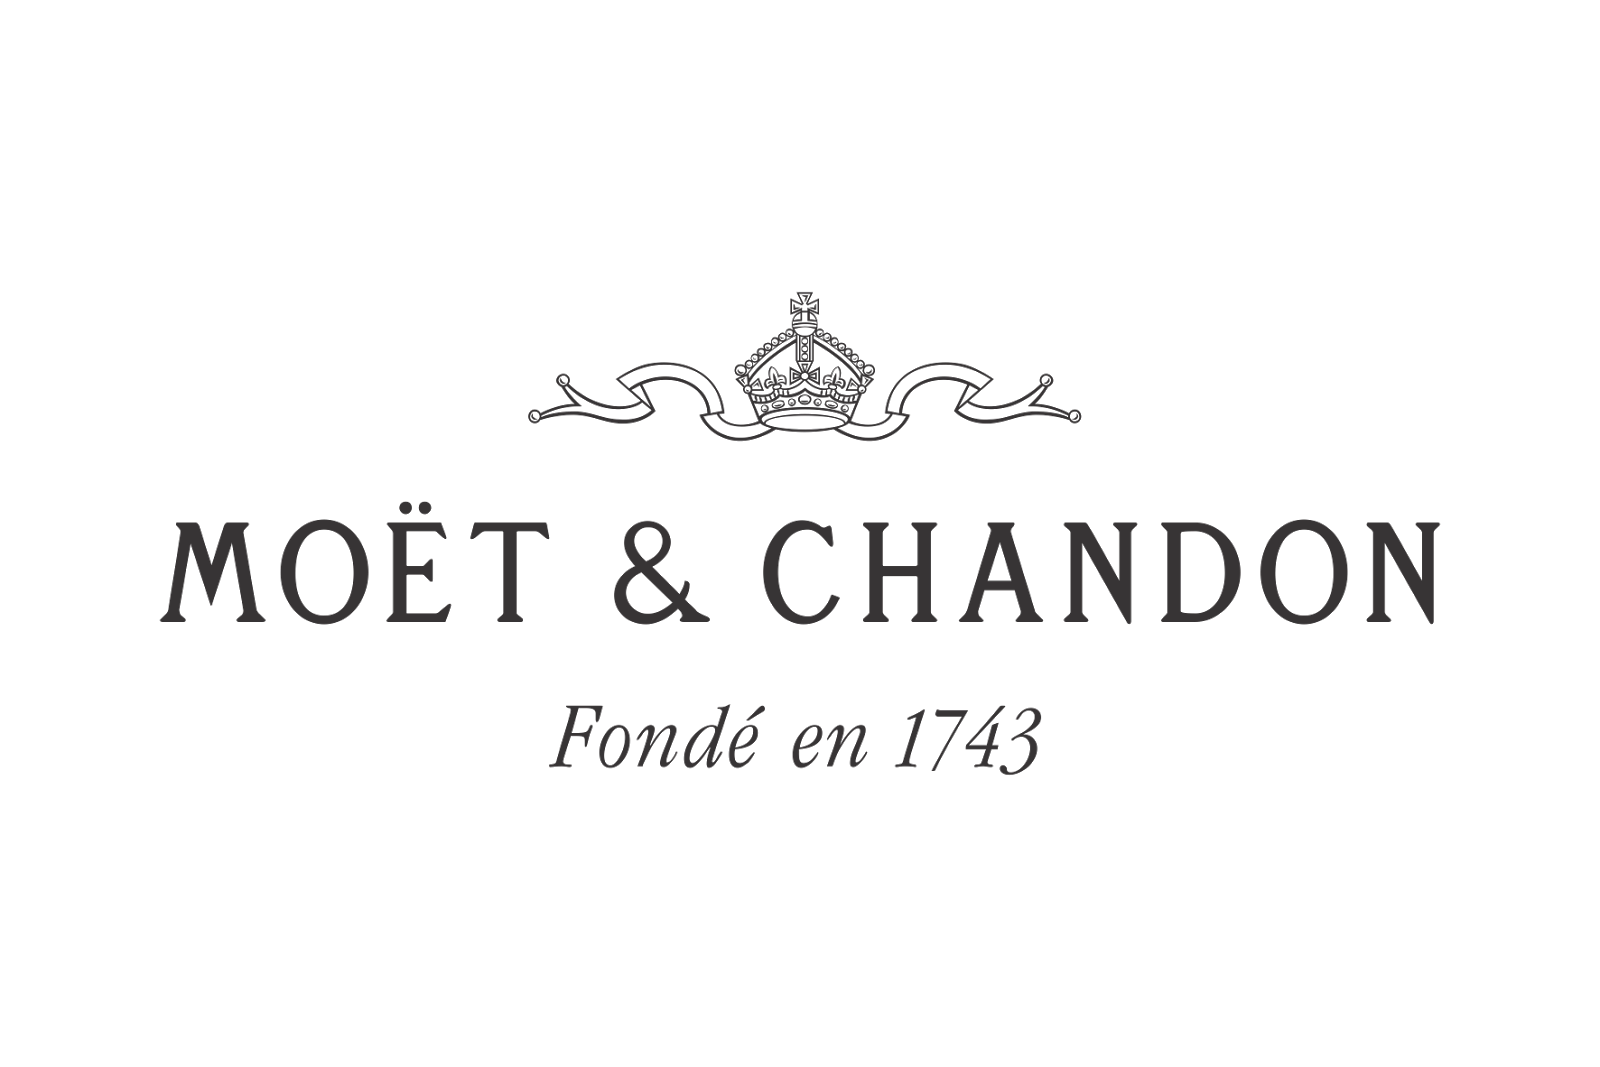 Moët & Chandon | Brands of the World™ | Download vector logos and ...